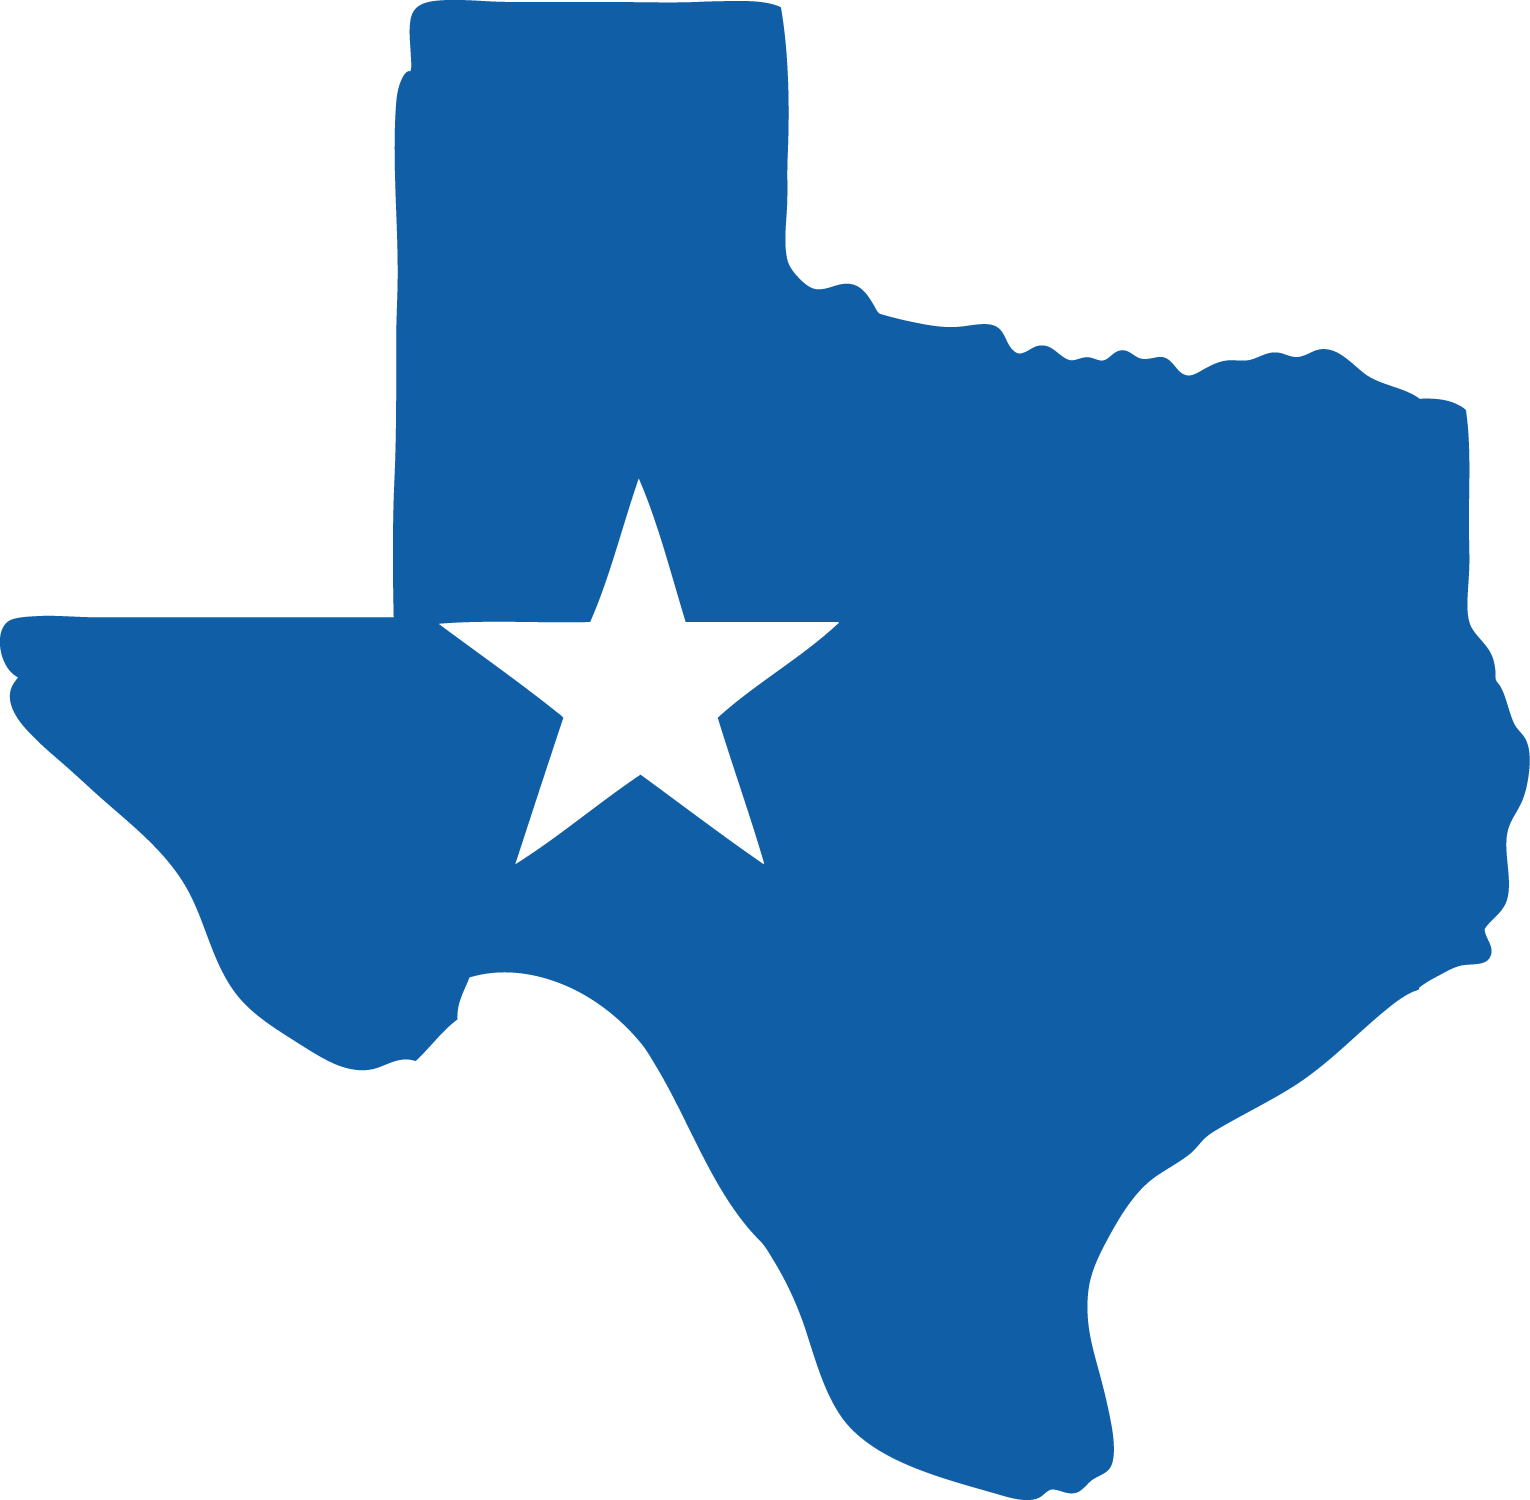 1530x1500 Texas Outline Clipart Free Images 5